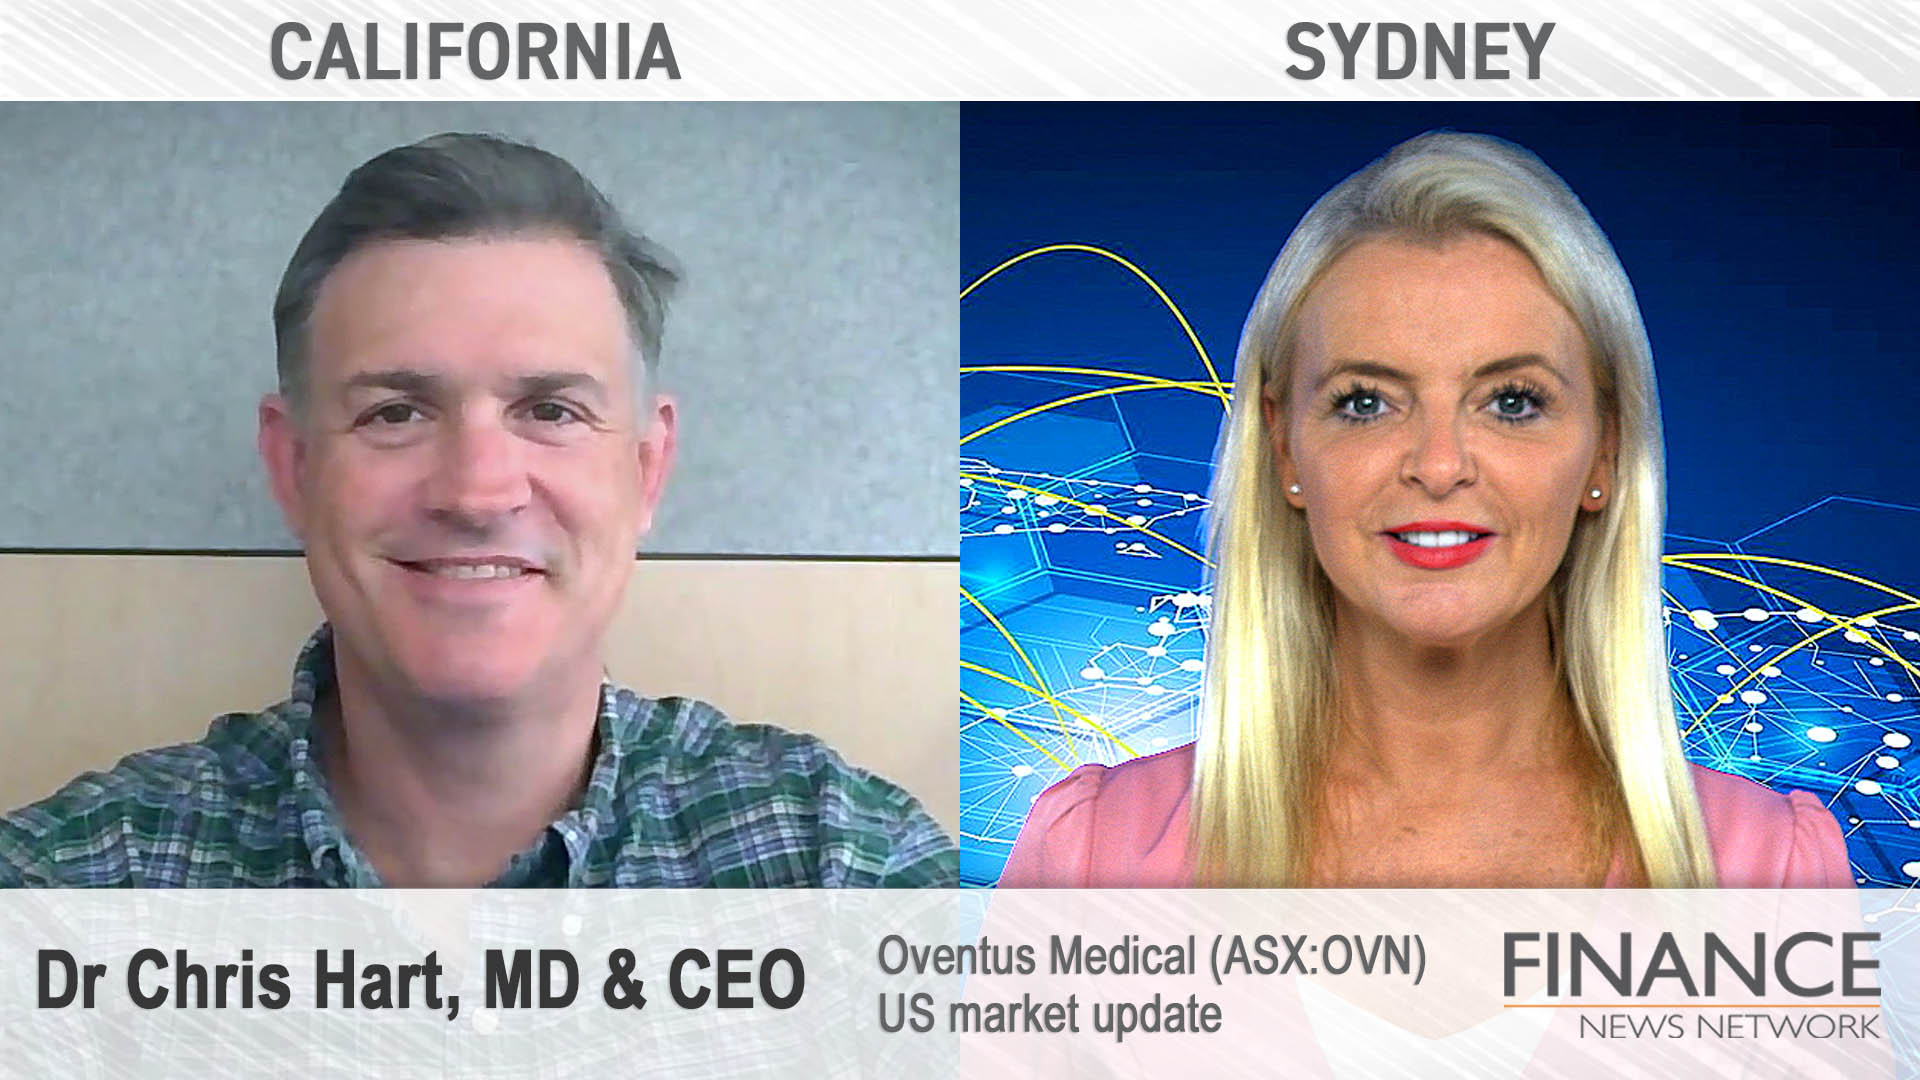 Oventus Medical (ASX:OVN) US market update